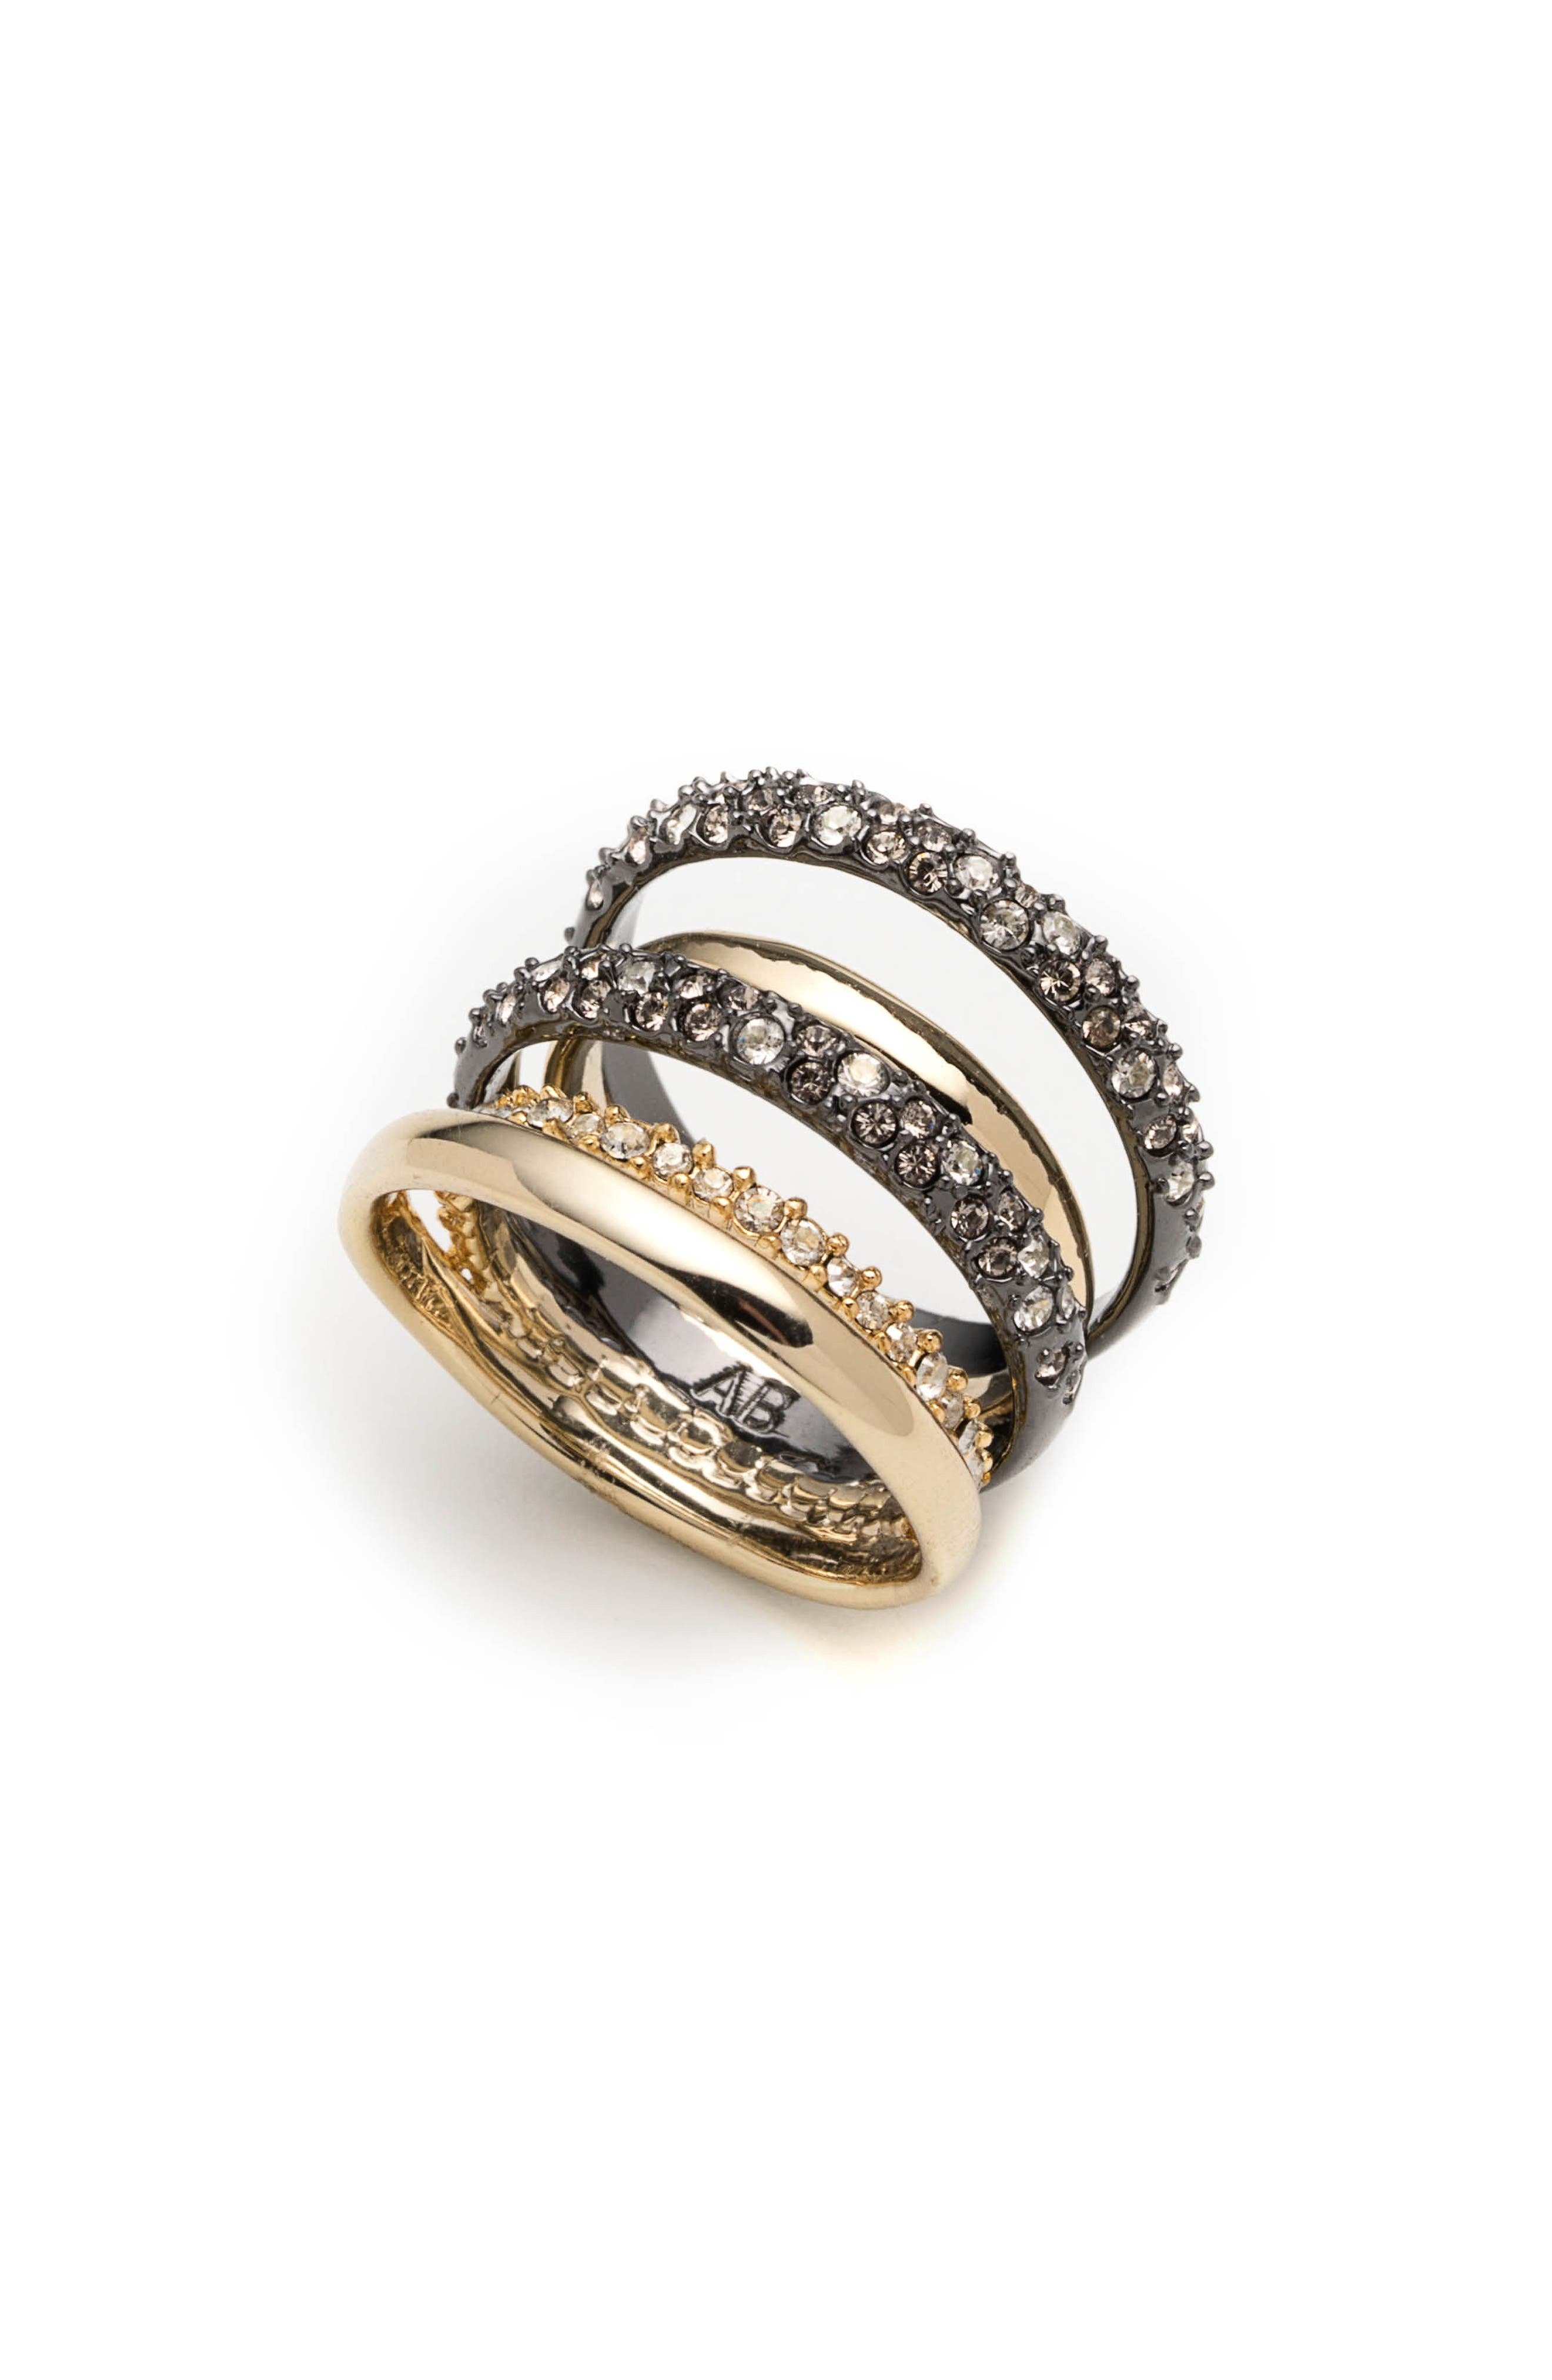 ALEXIS BITTAR, Pavé Stack Ring, Main thumbnail 1, color, 710